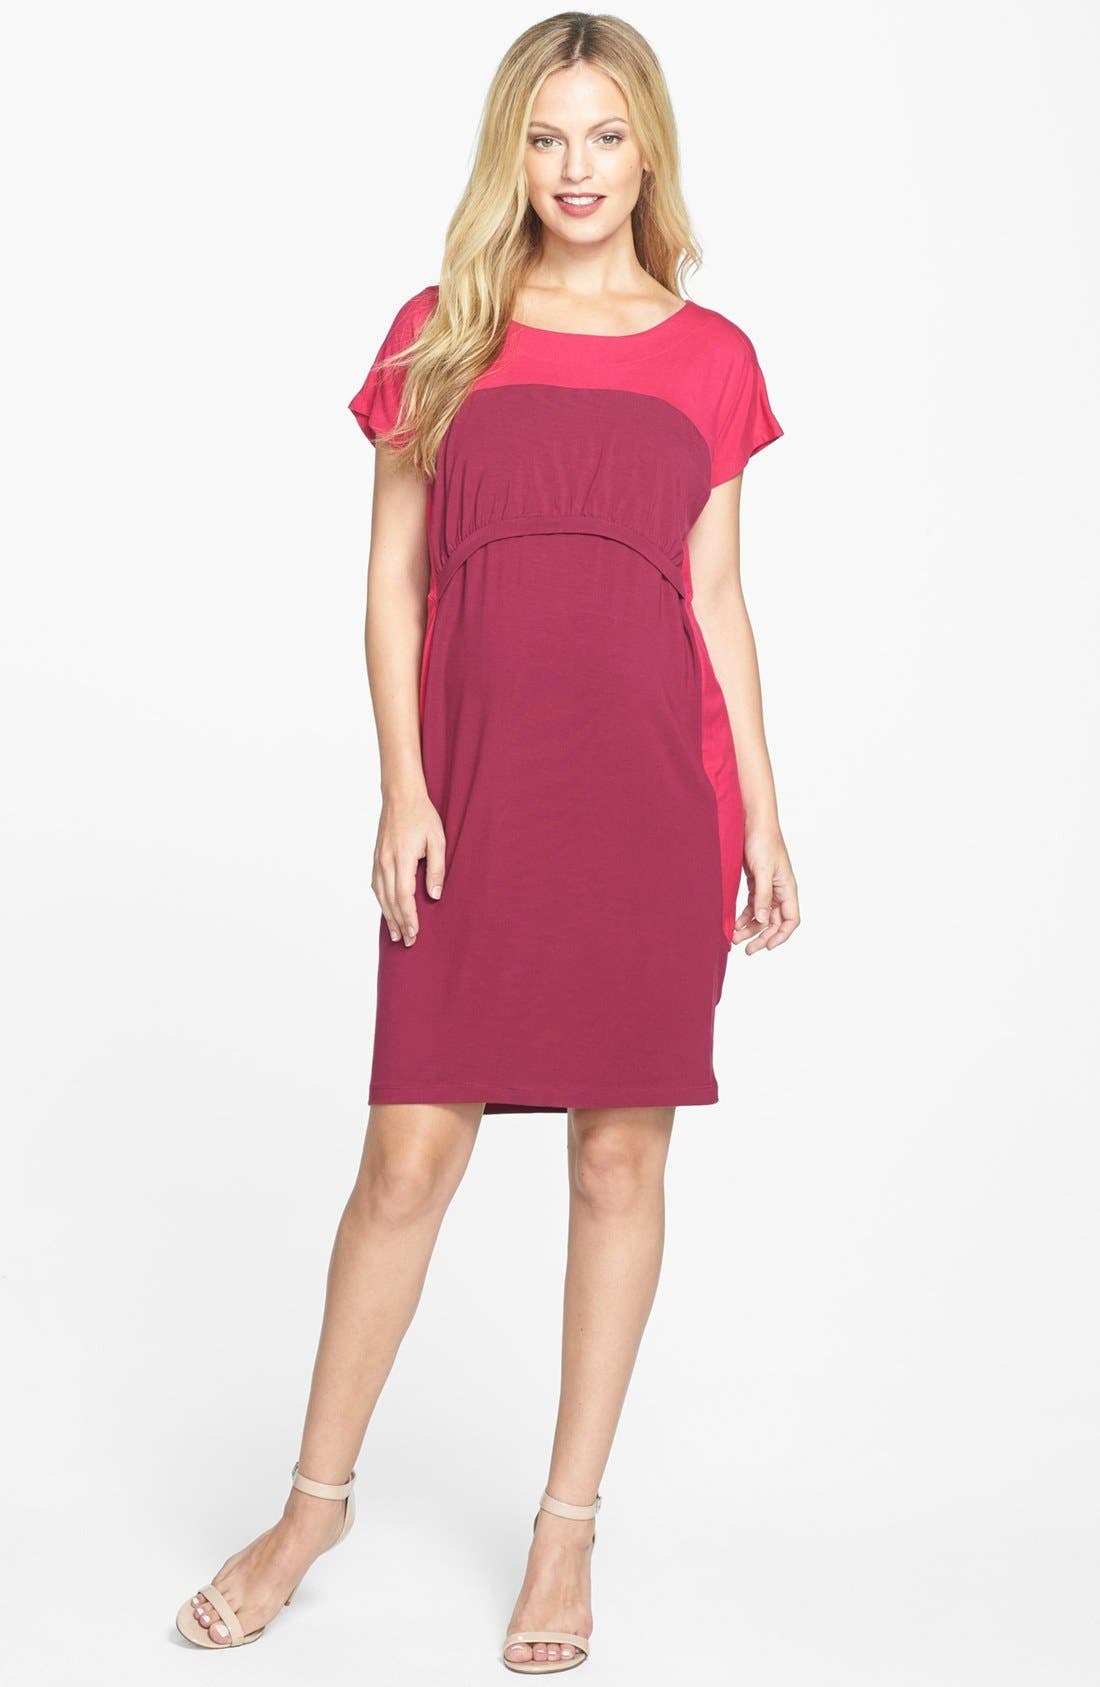 Alternate Image 1 Selected - Japanese Weekend Colorblock Maternity/Nursing Dress